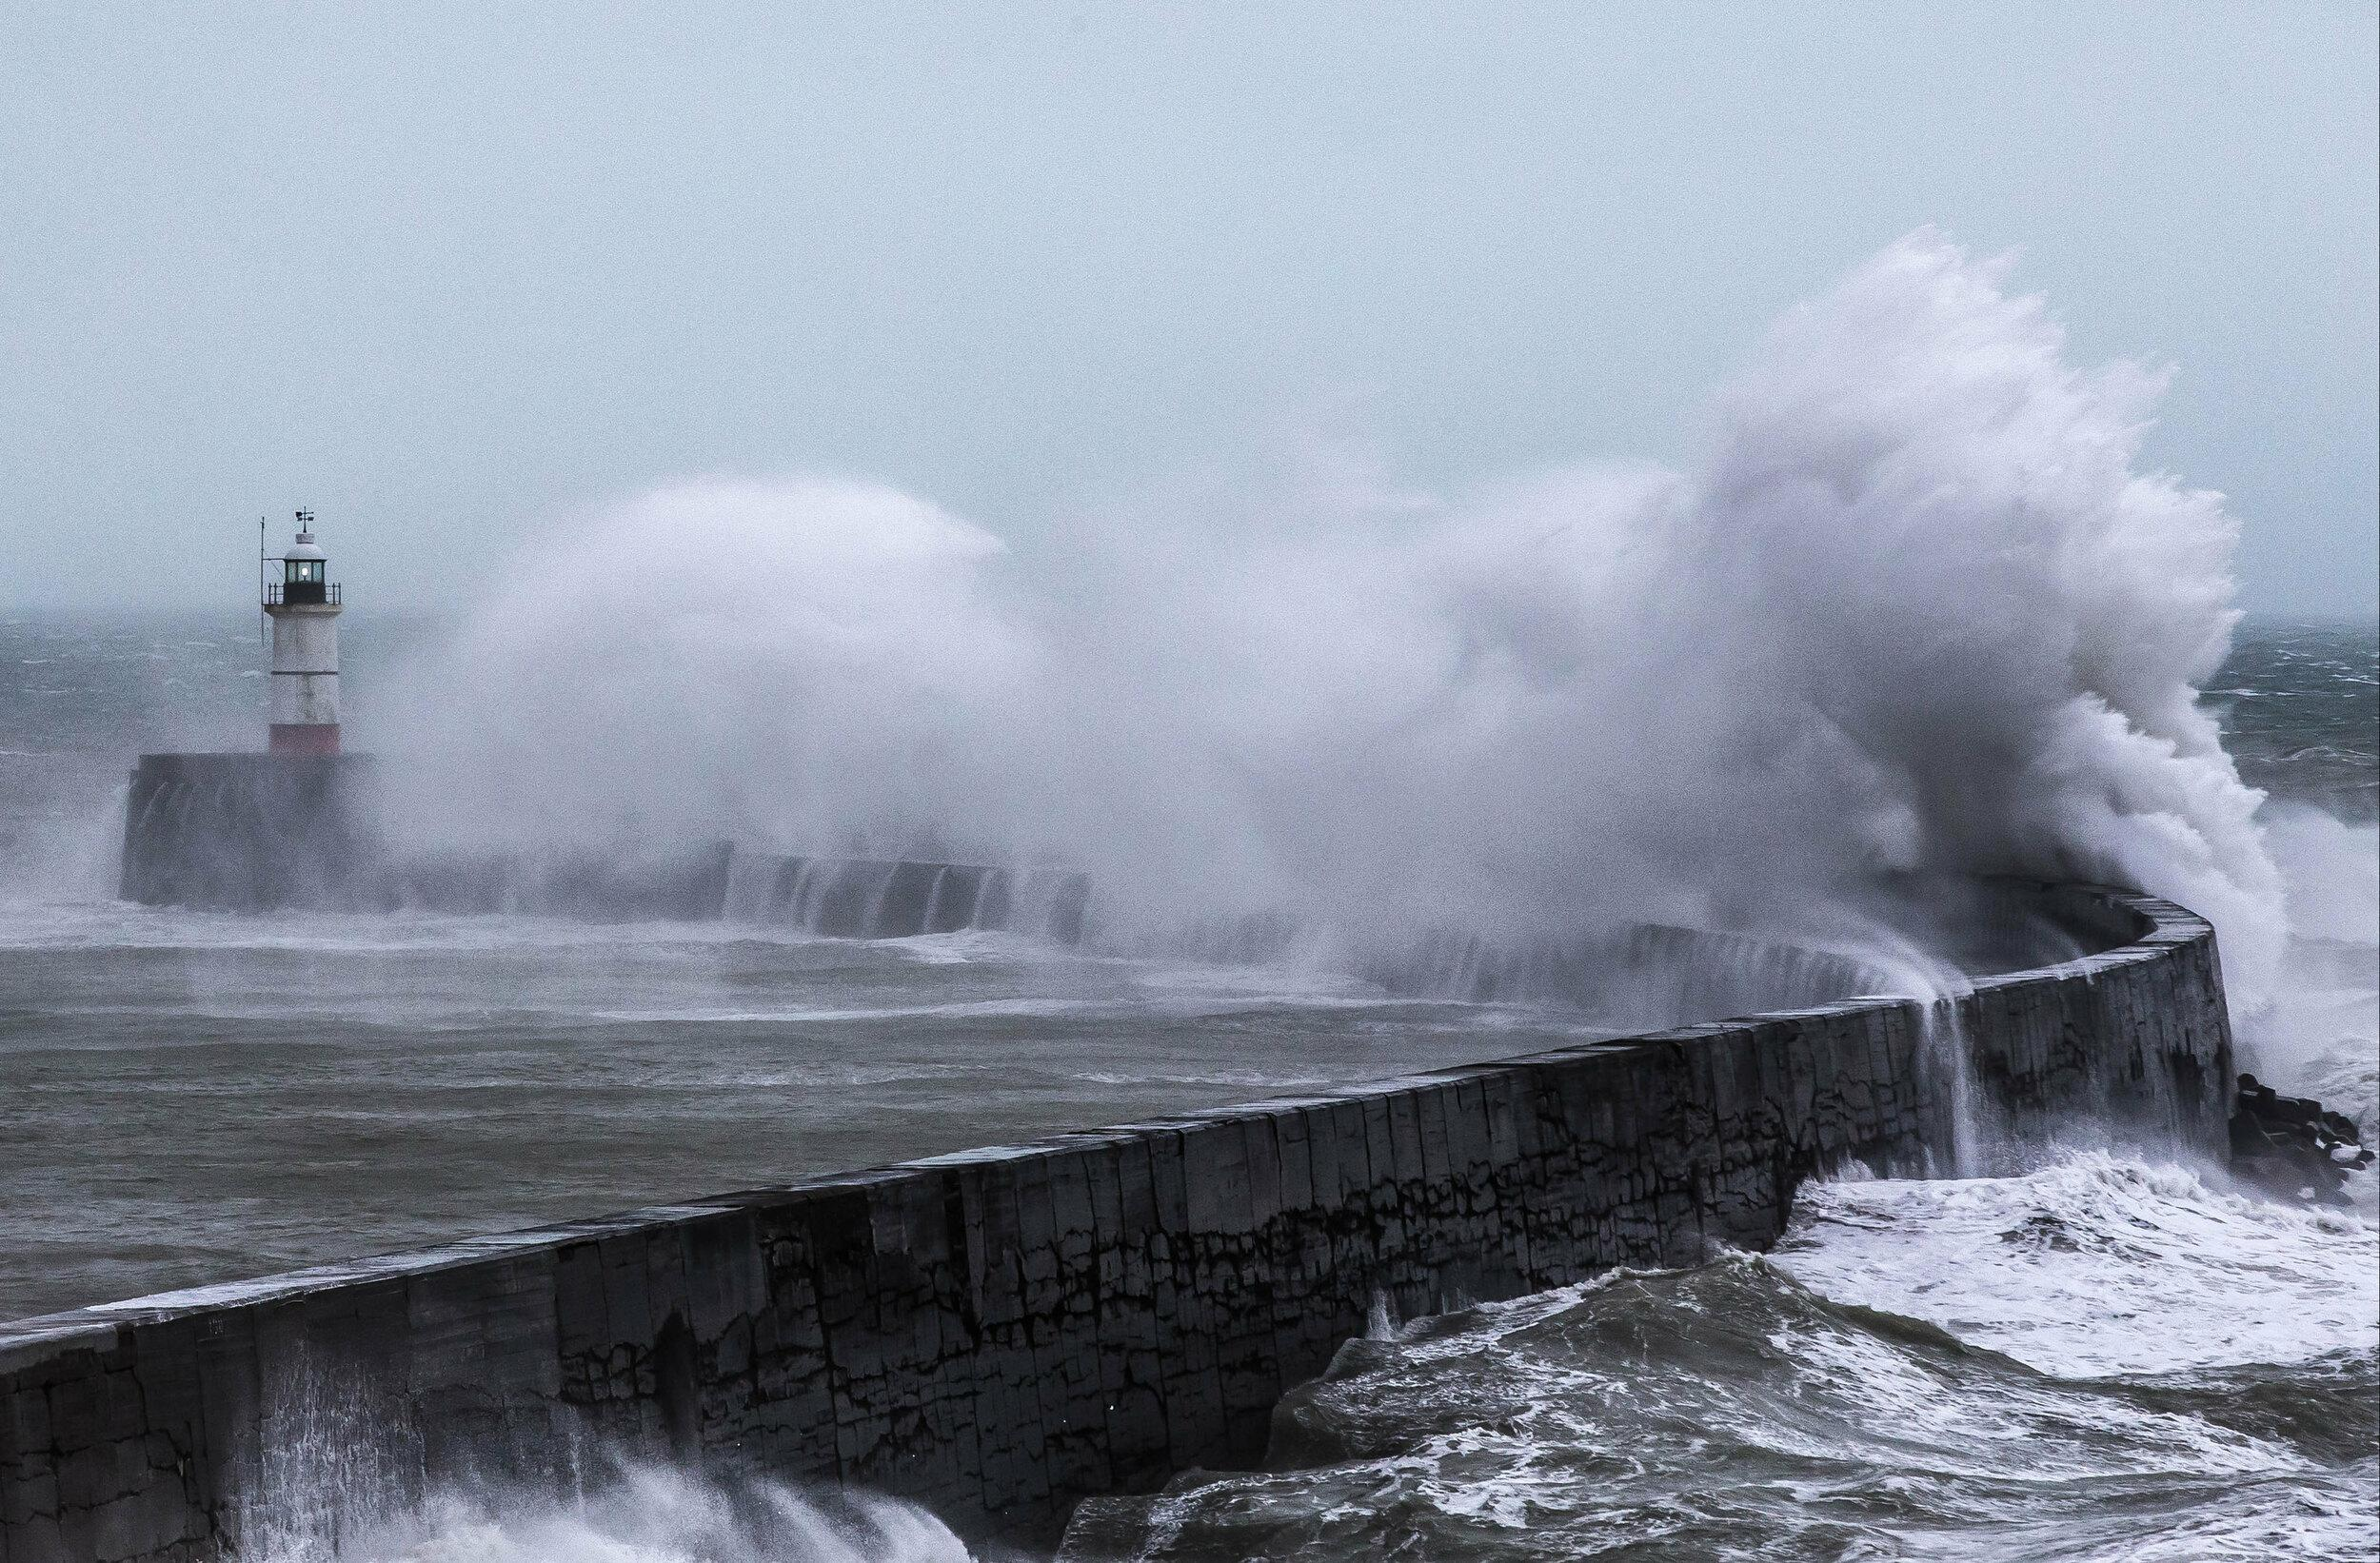 Storm Erik creates large waves and rough seas at Newhaven, East Sussex